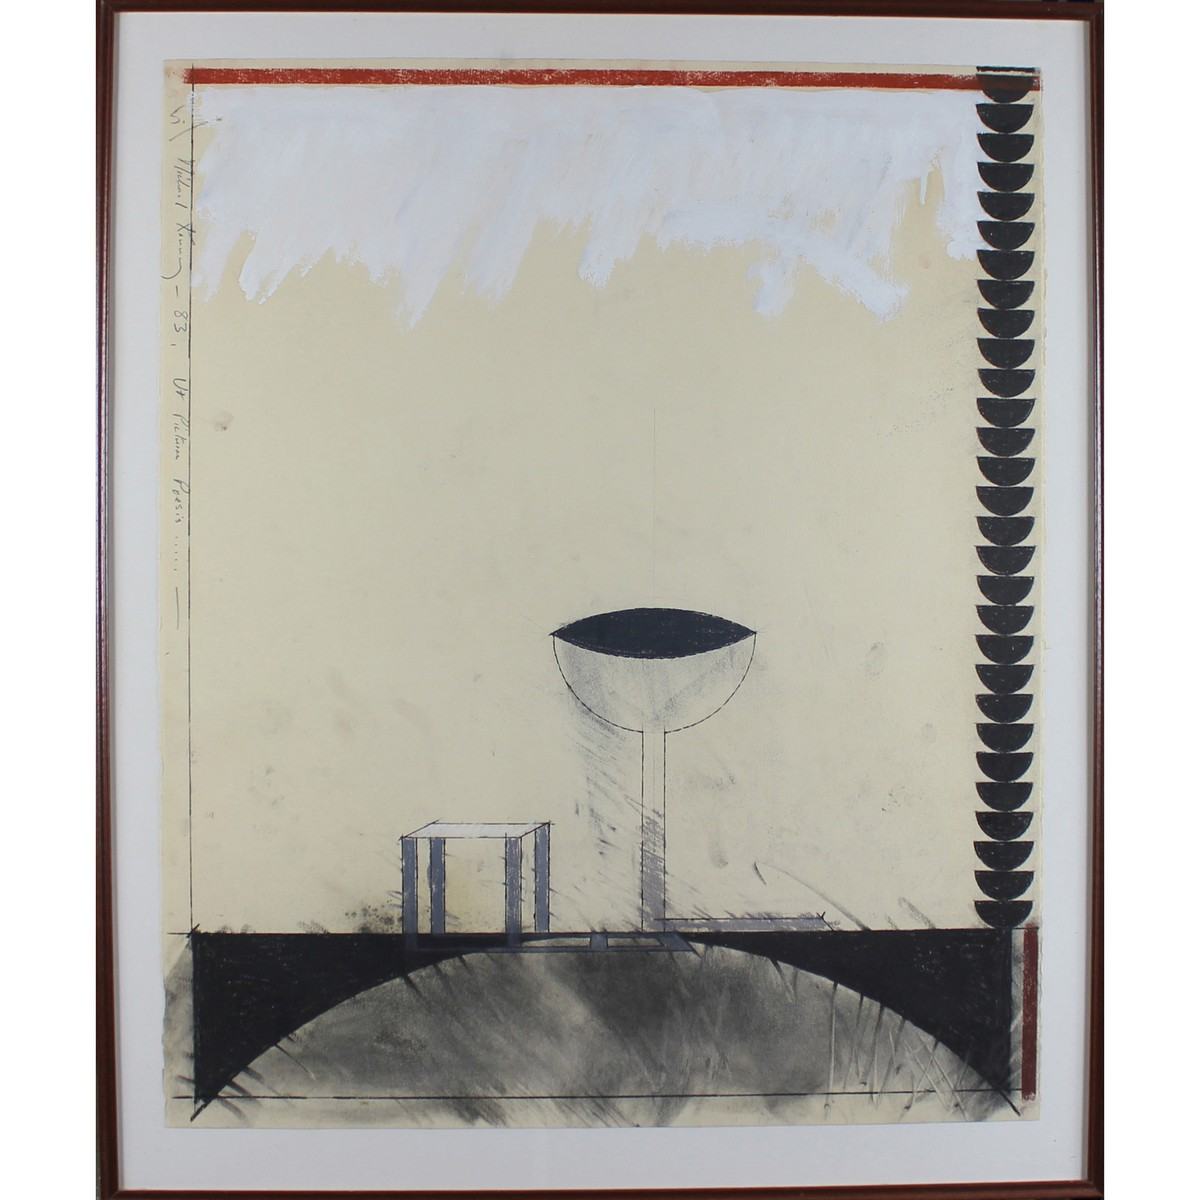 Lot 41 - Kenny, Michael 1941-2000 British AR, Ut Pictura Poesis (Paintings are poetry).